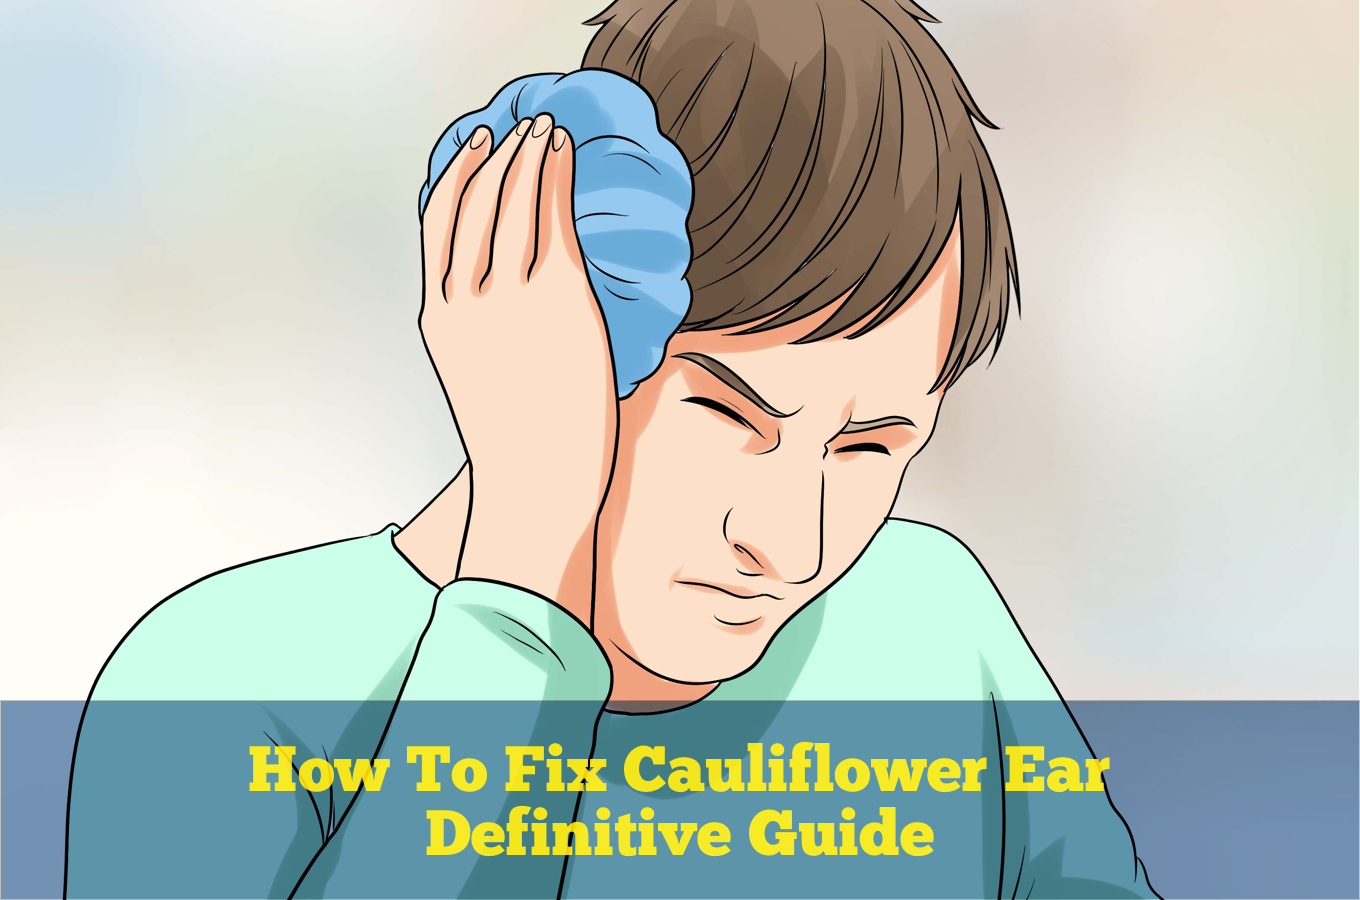 How To Fix Cauliflower Ear - Definitive Guide